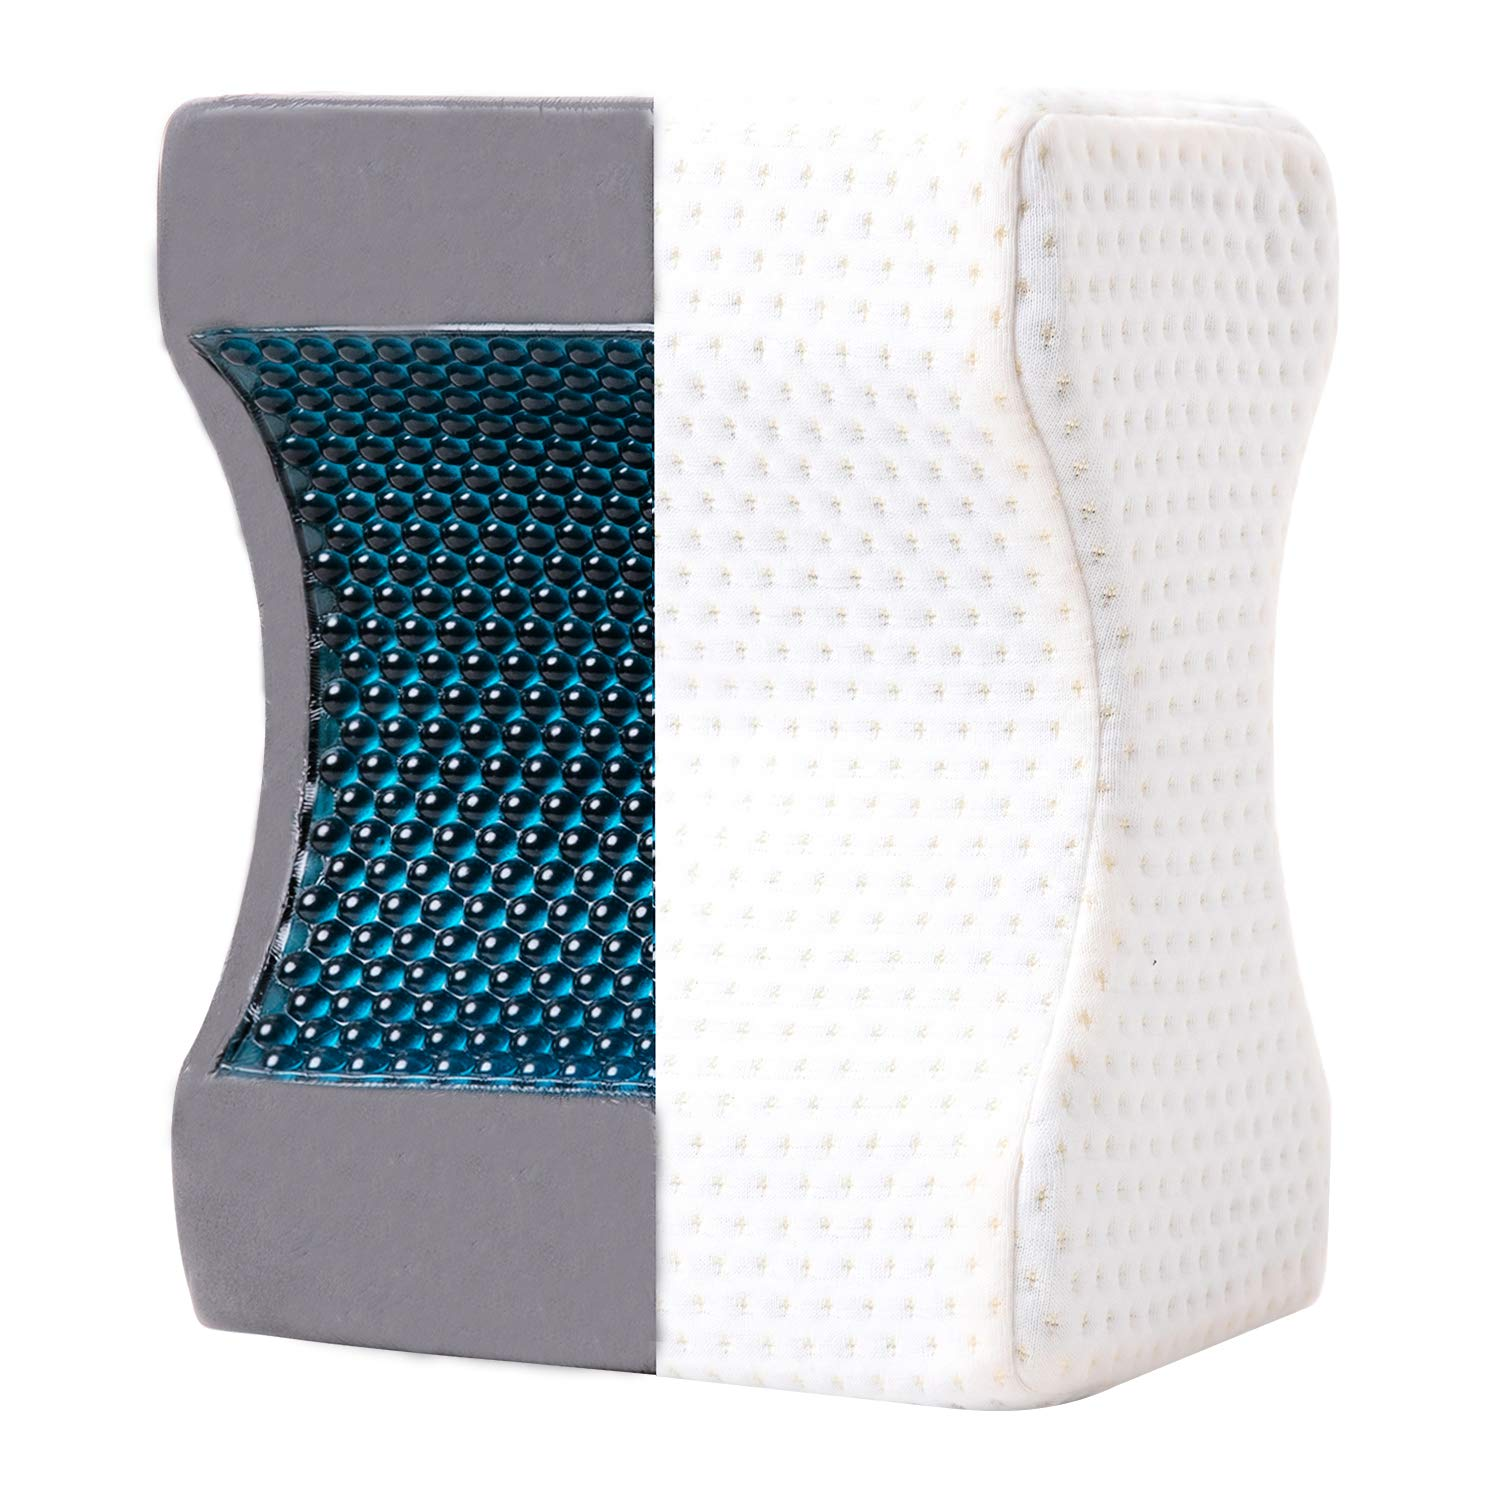 JuMeiHui Cooling Knee Pillow by Side Sleepers for Sciatica Relief, Back Pain, Leg Pain, Pregnancy, Hip and Joint Pain. Memory Foam with Cooling Gel (Removable and Washable Cover)